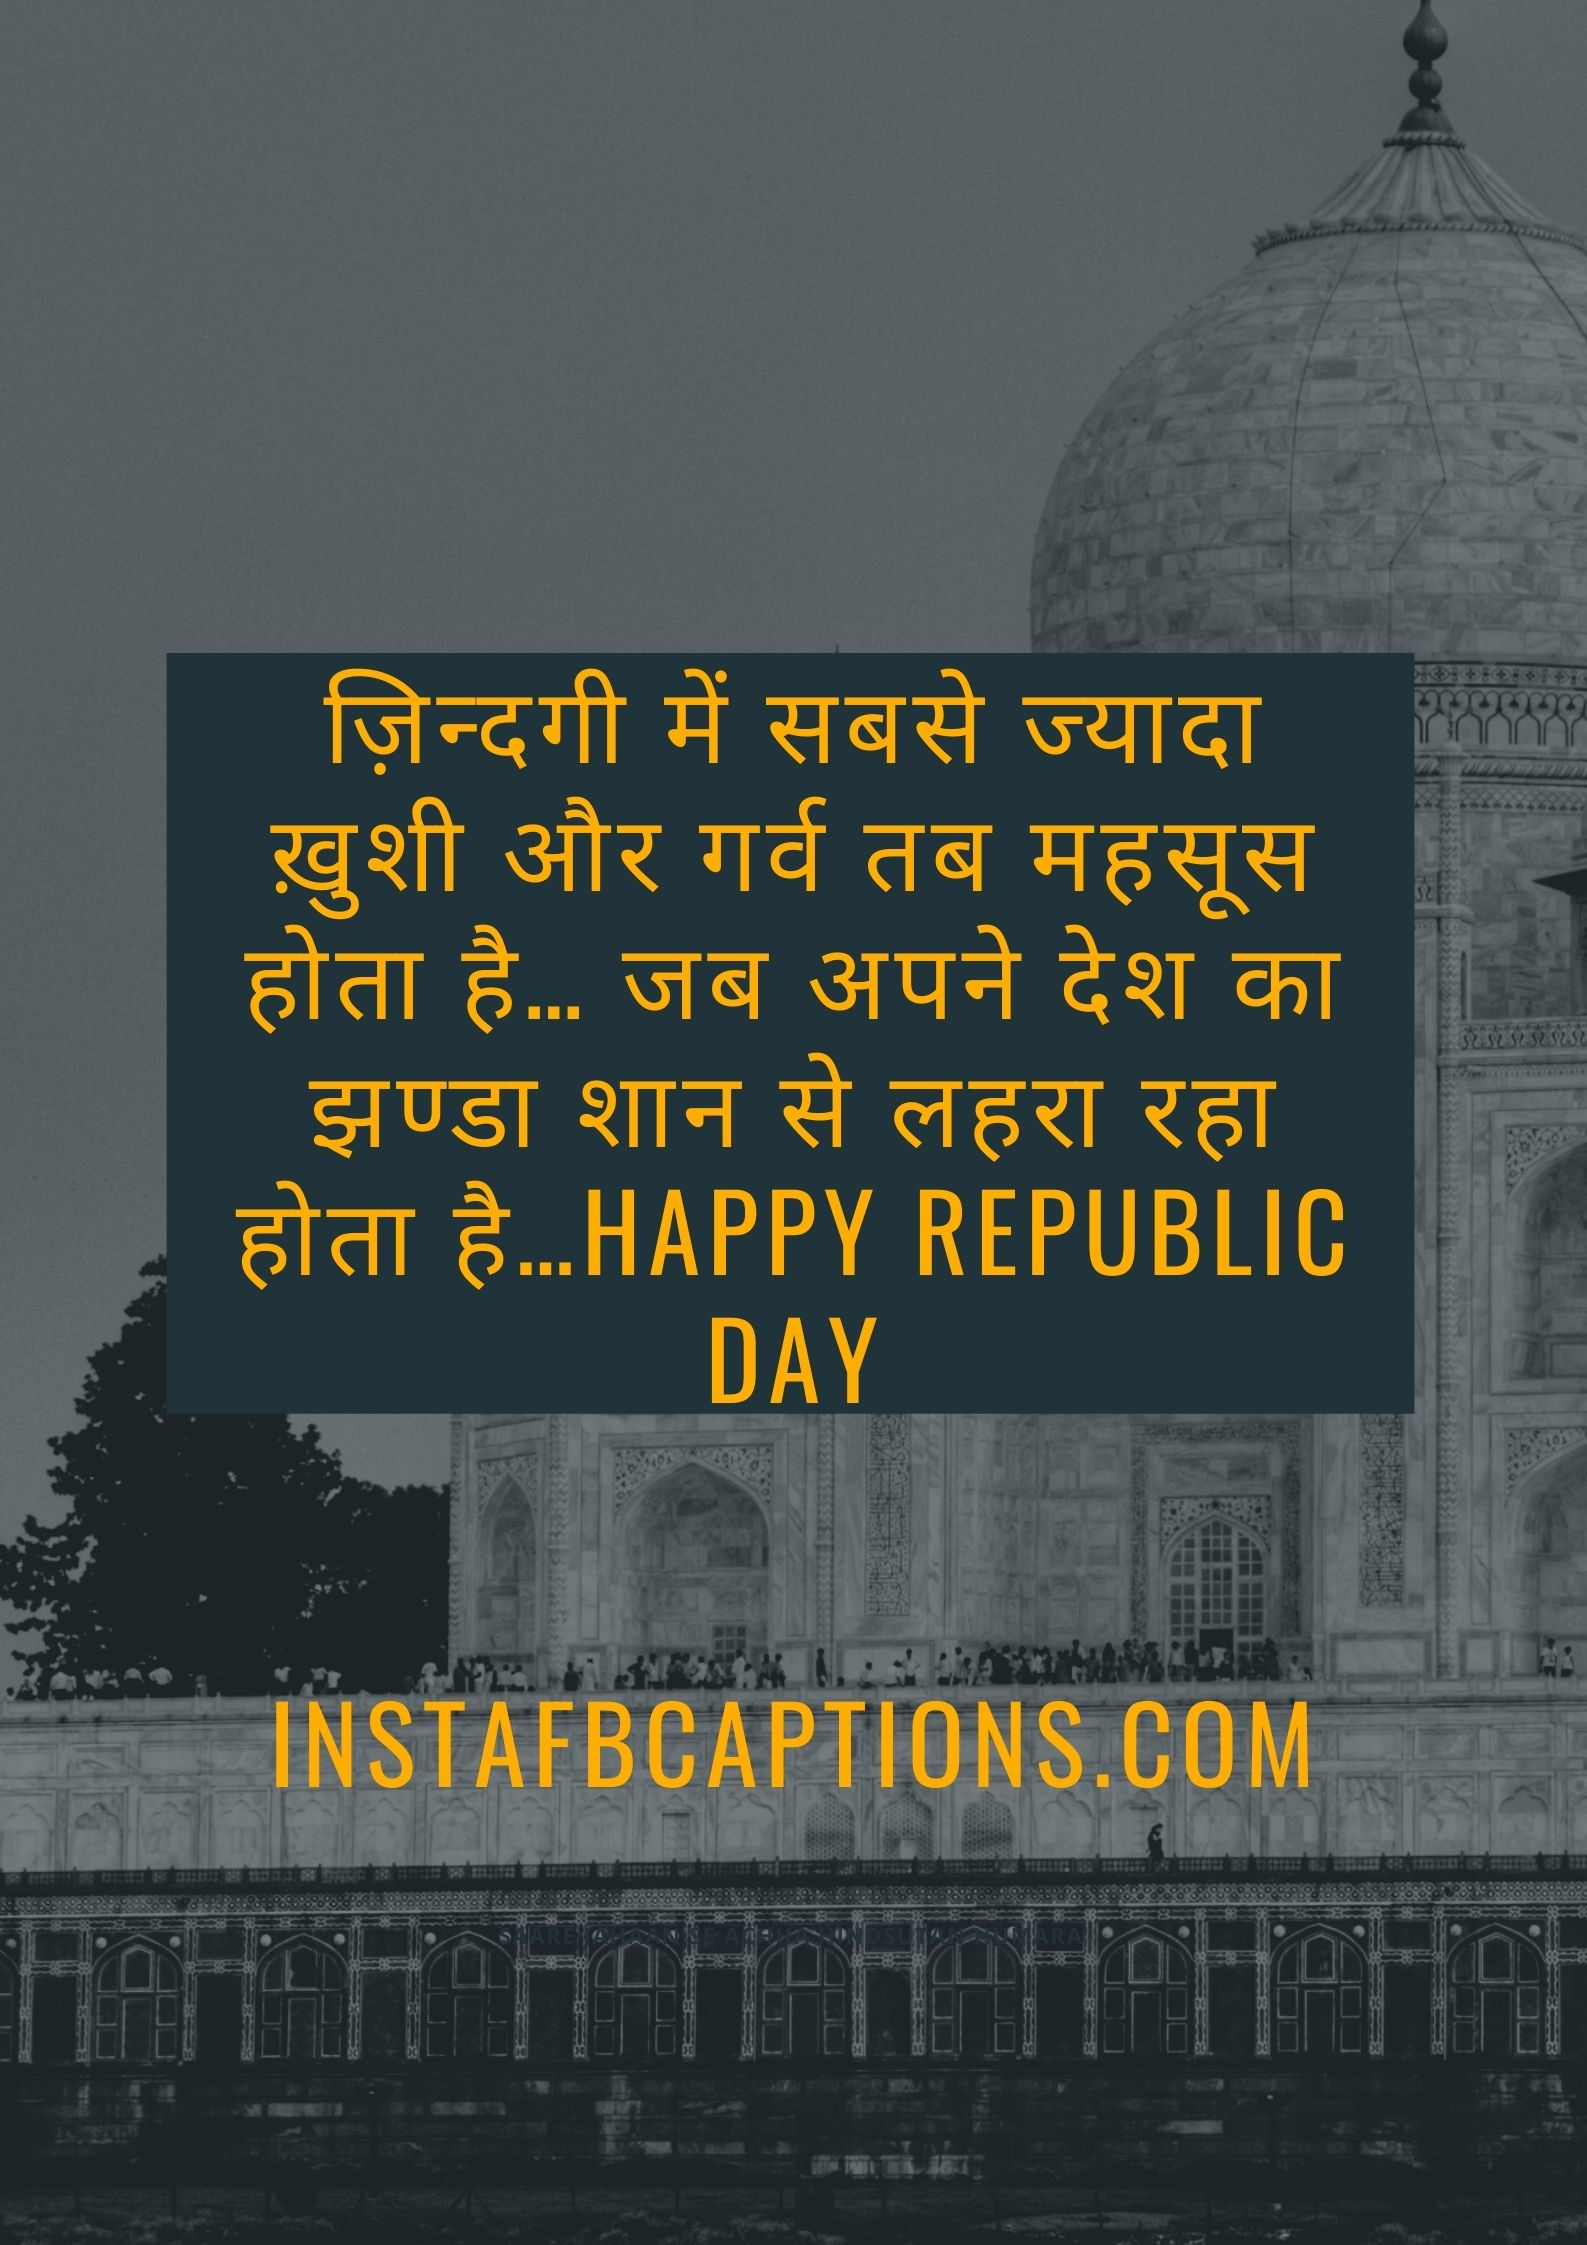 Republic Day Quotes In Hindi  - Republic Day Quotes in Hindi - 50+ REPUBLIC DAY Captions & Quotes 2021